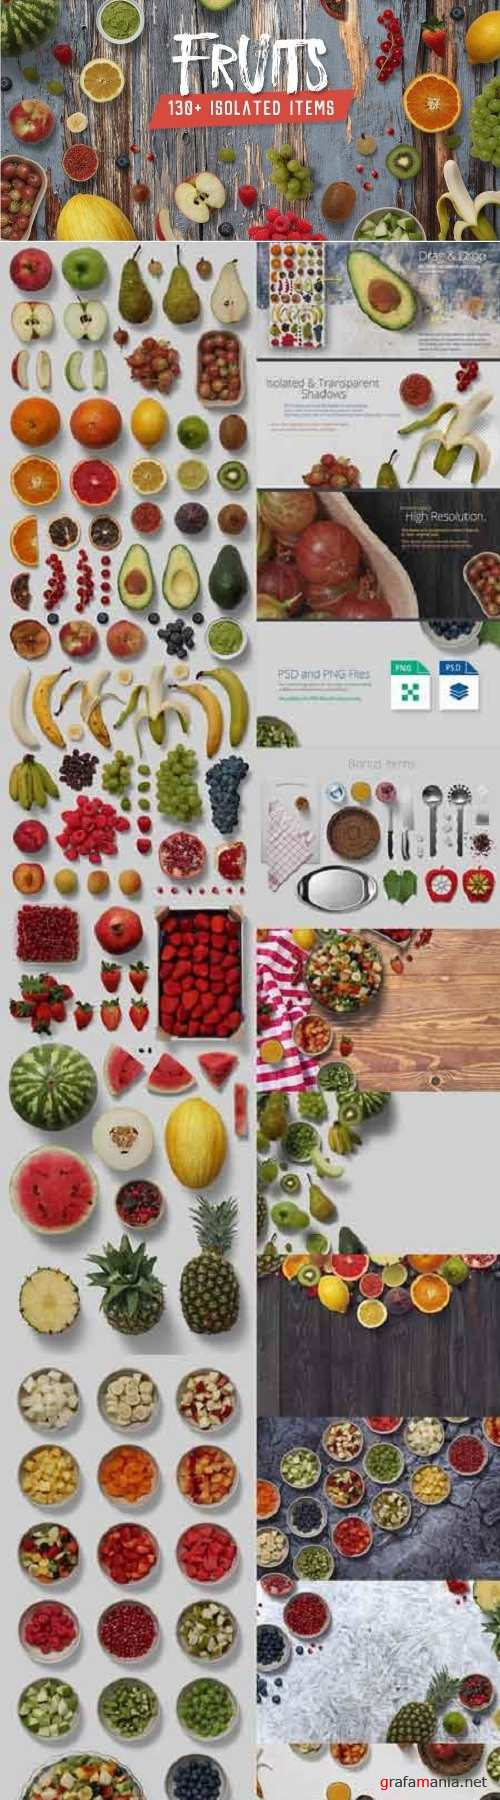 Fruits - Isolated Food Items 2135412